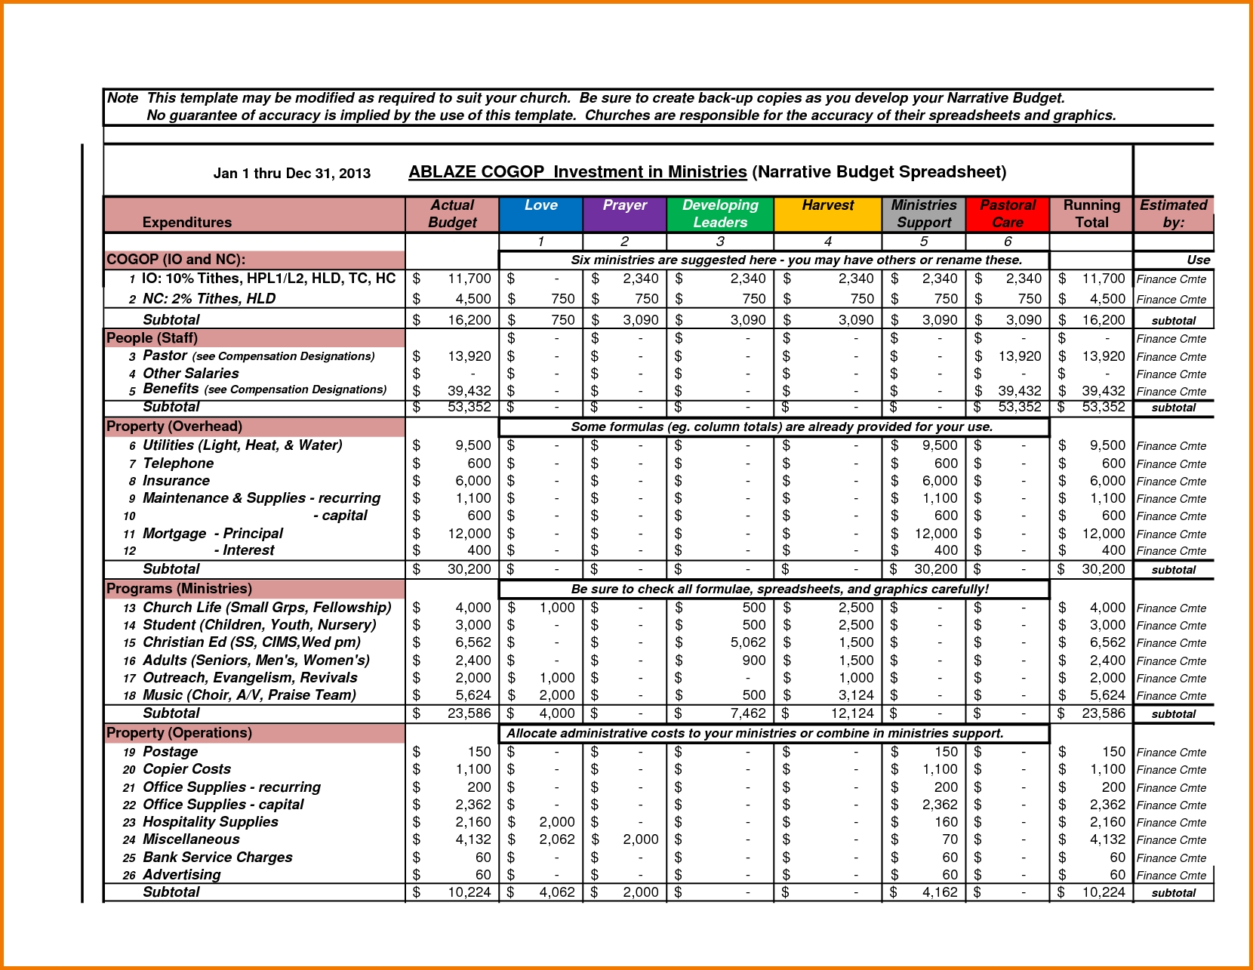 Budget Tool Excel Save.btsa.co Throughout Budgeting Tool Excel Intended For Budgeting Tool Excel